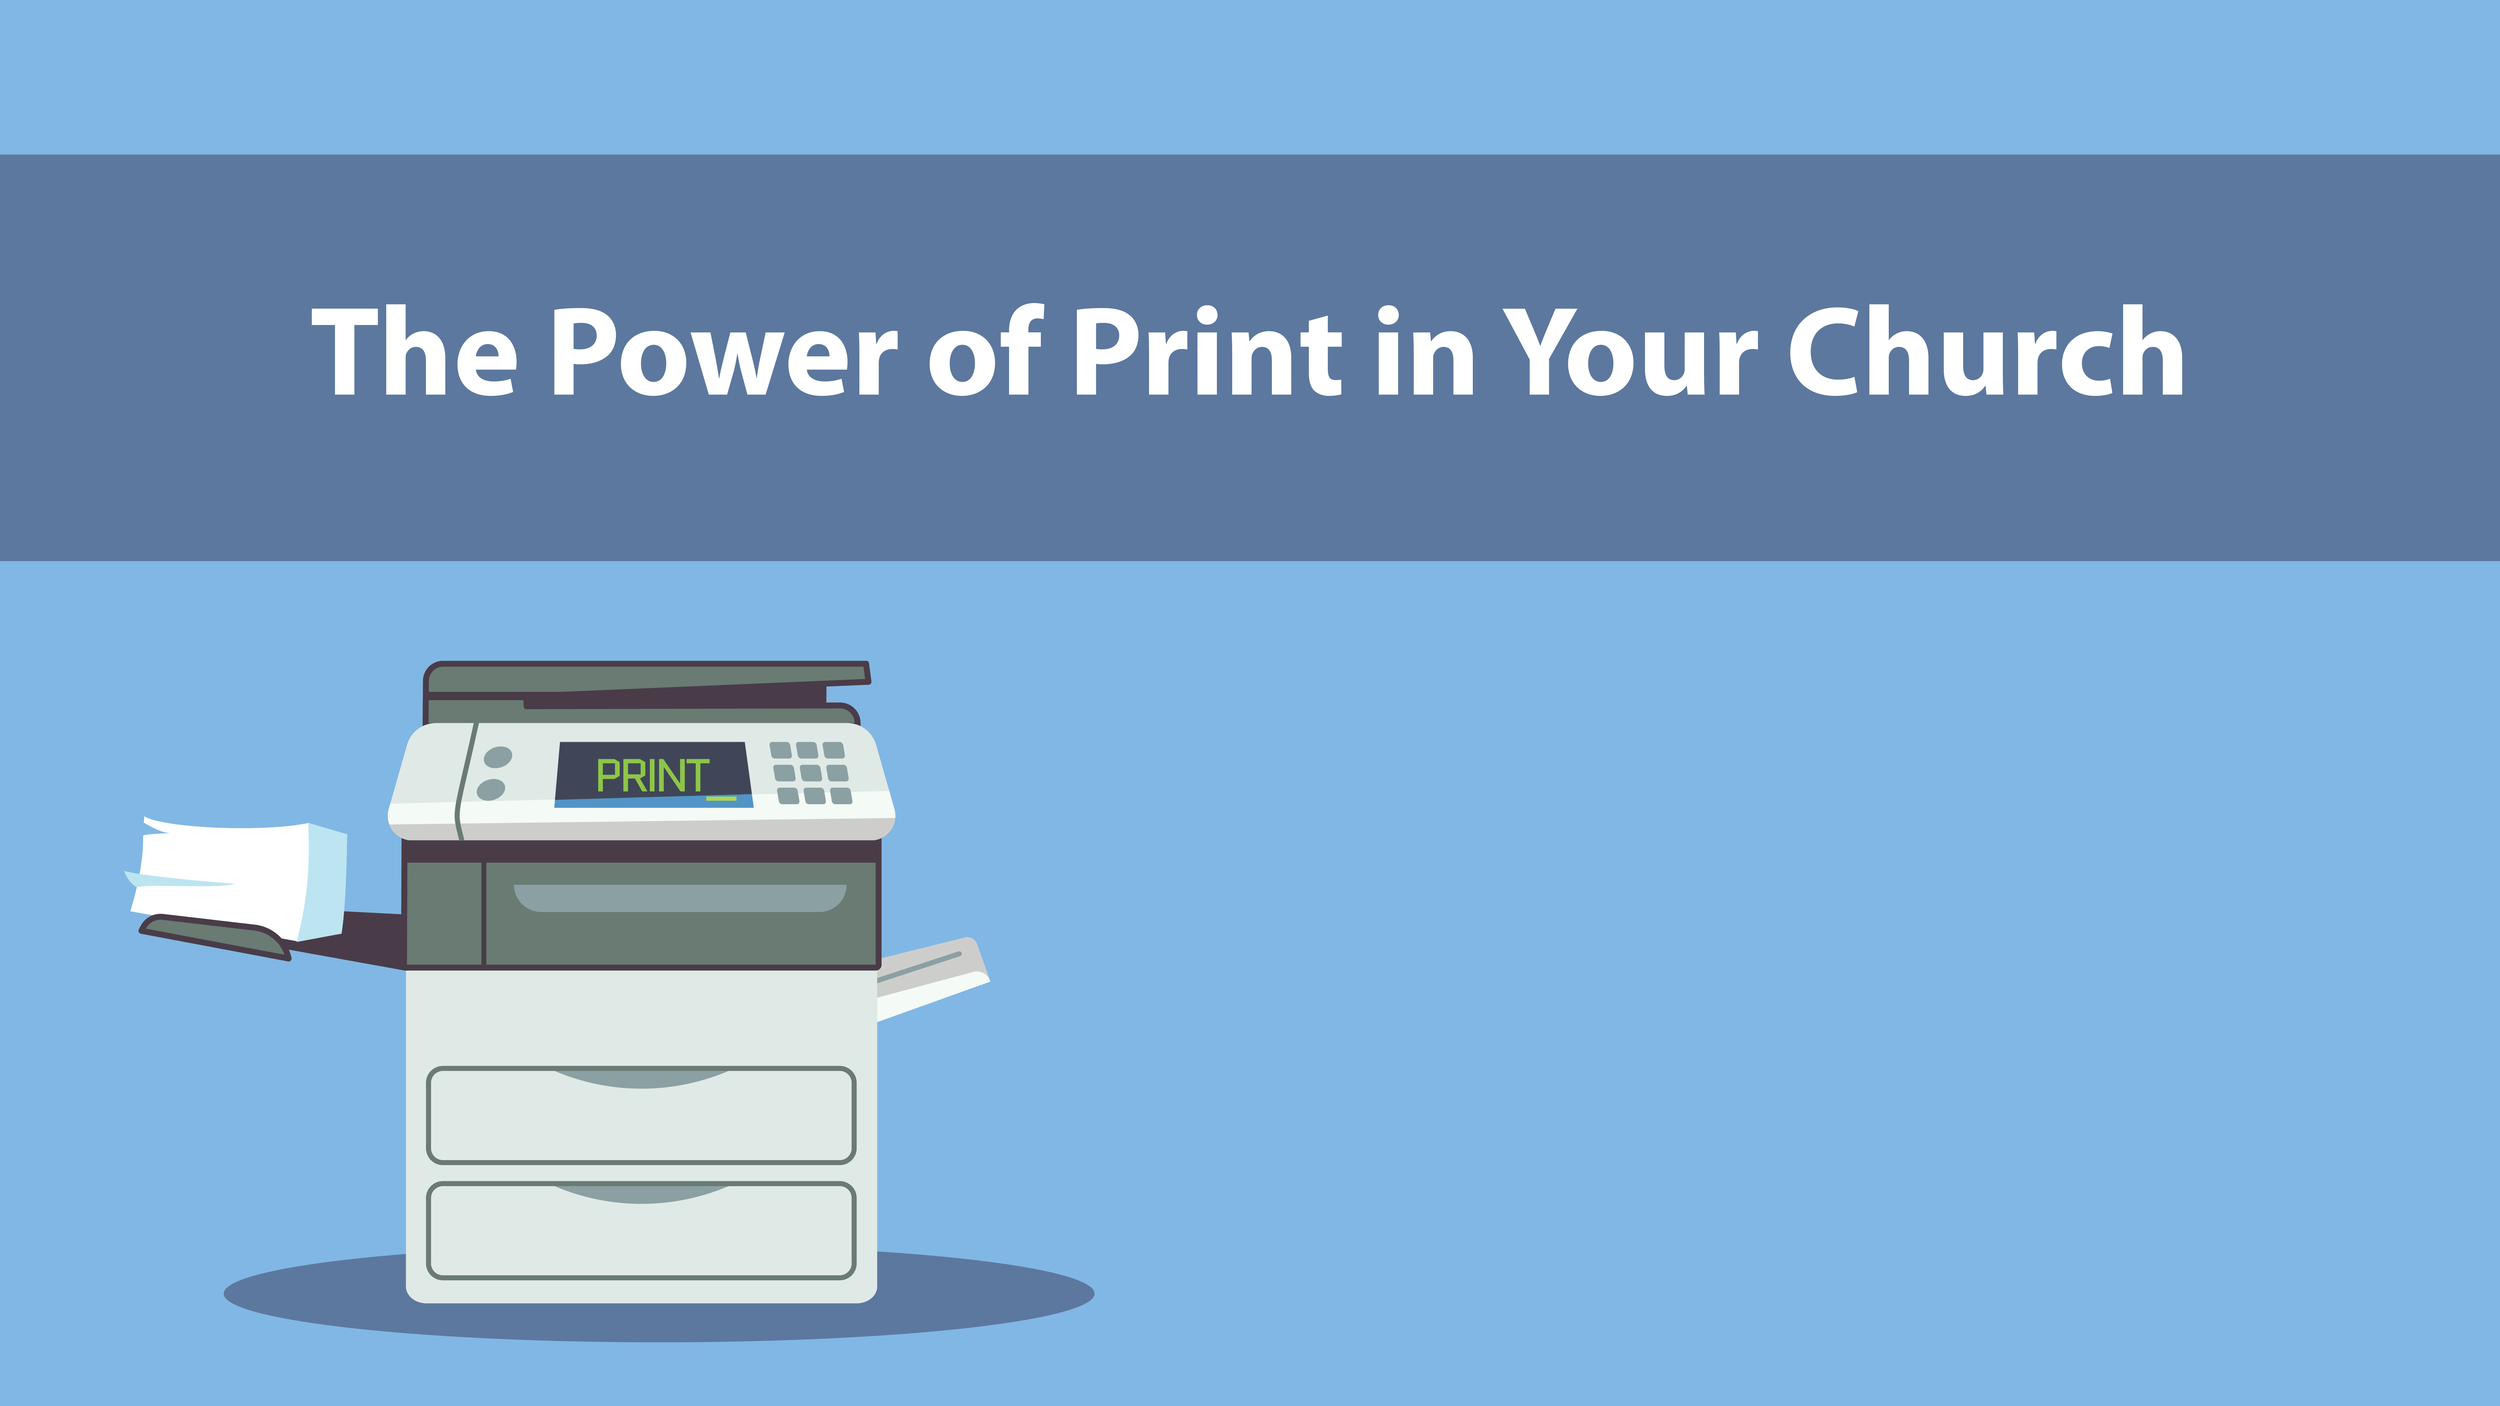 ThePowerofPrint_Graphic.png